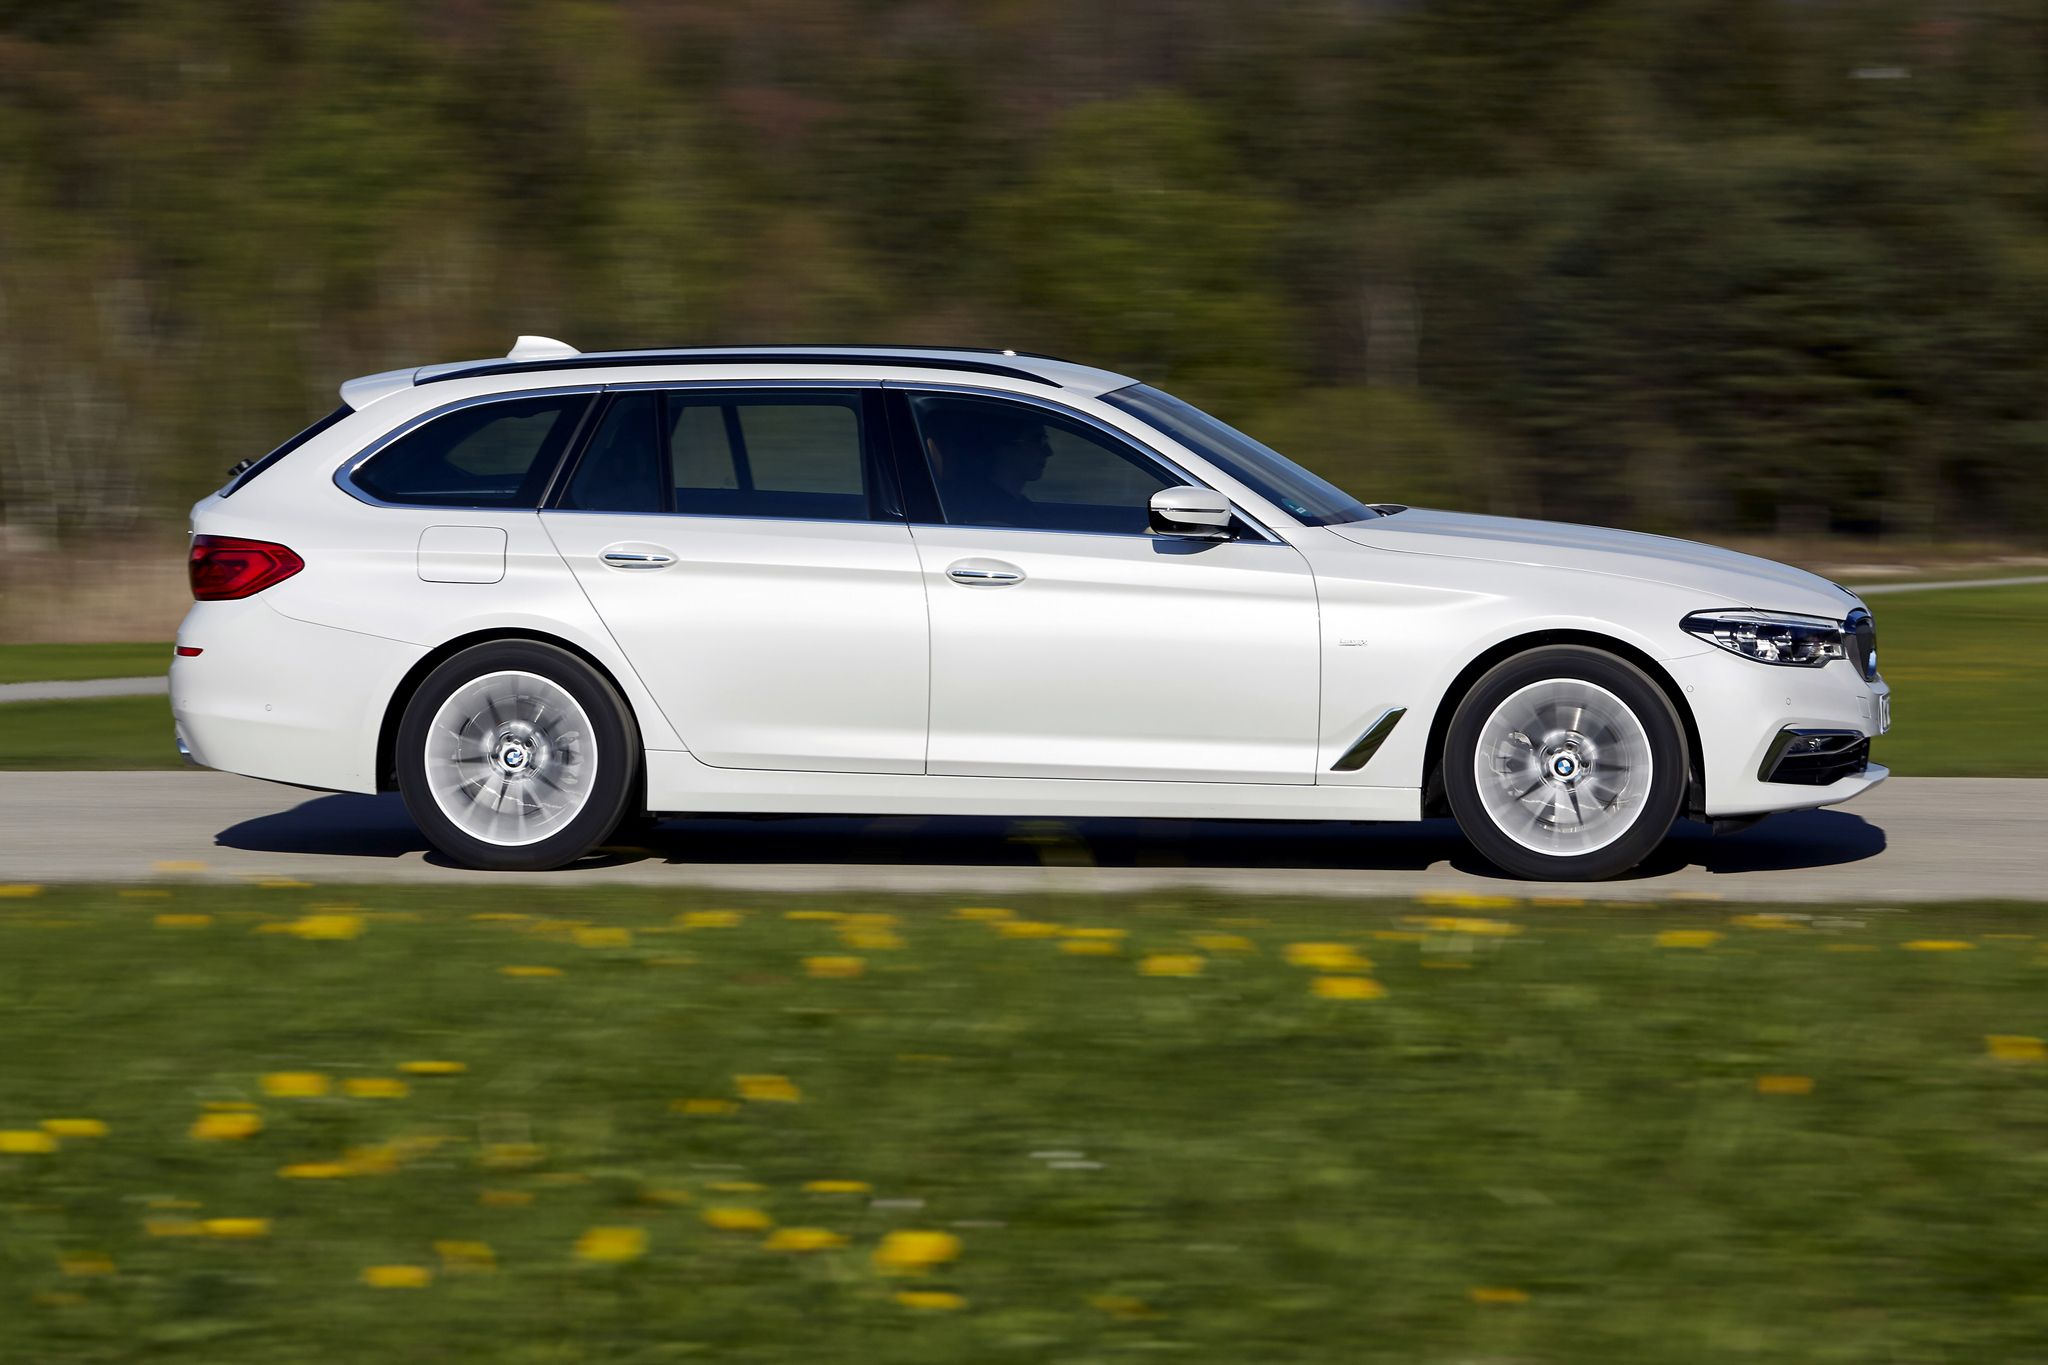 Pin By Bmw Life On Bmw Touring In 2020 Bmw Touring Bmw Bmw 5 Series